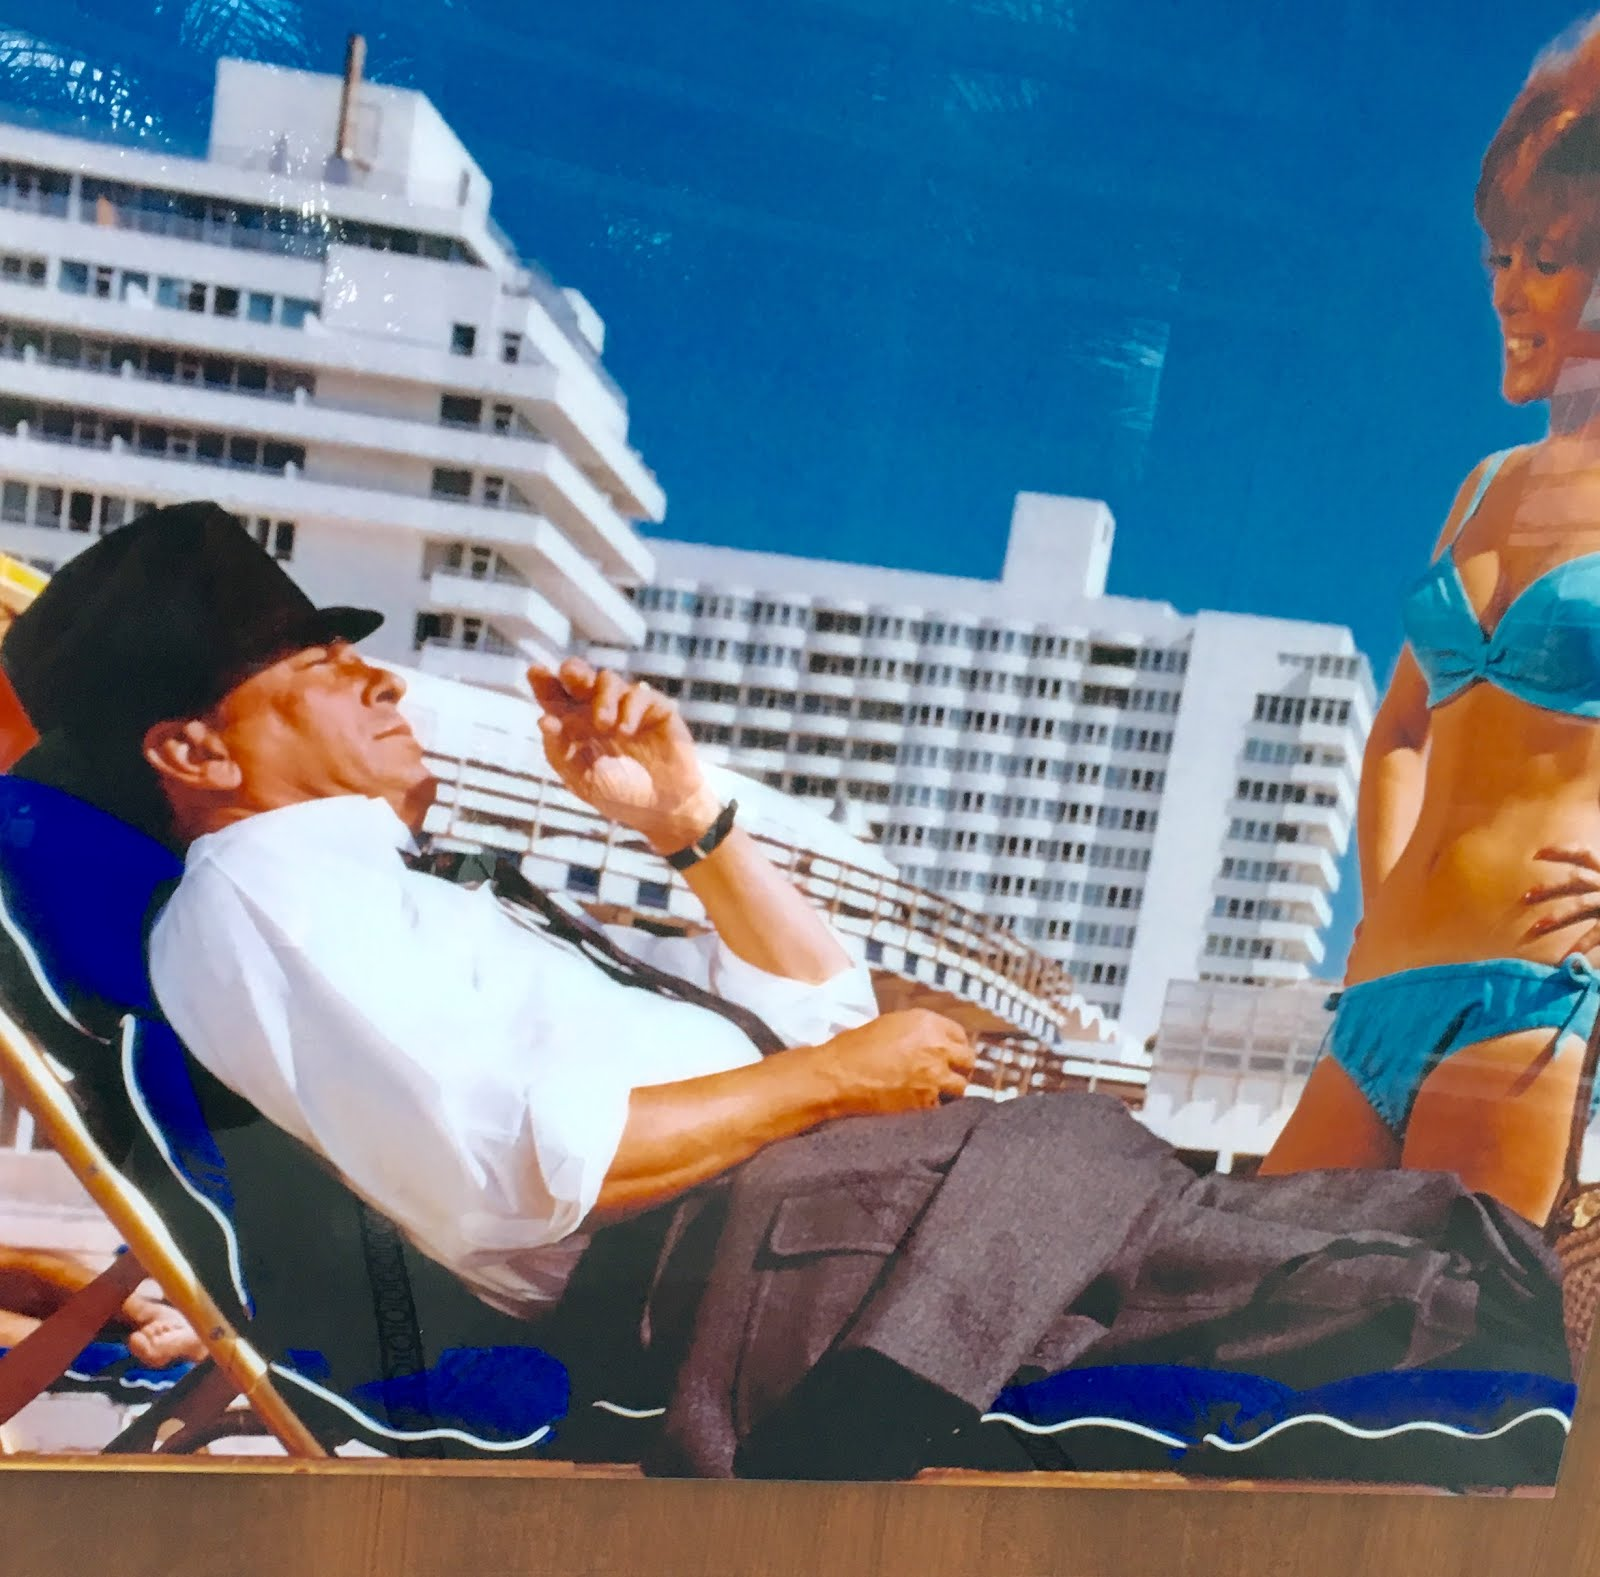 summer days / Sinatra exposition at Fontainebleau